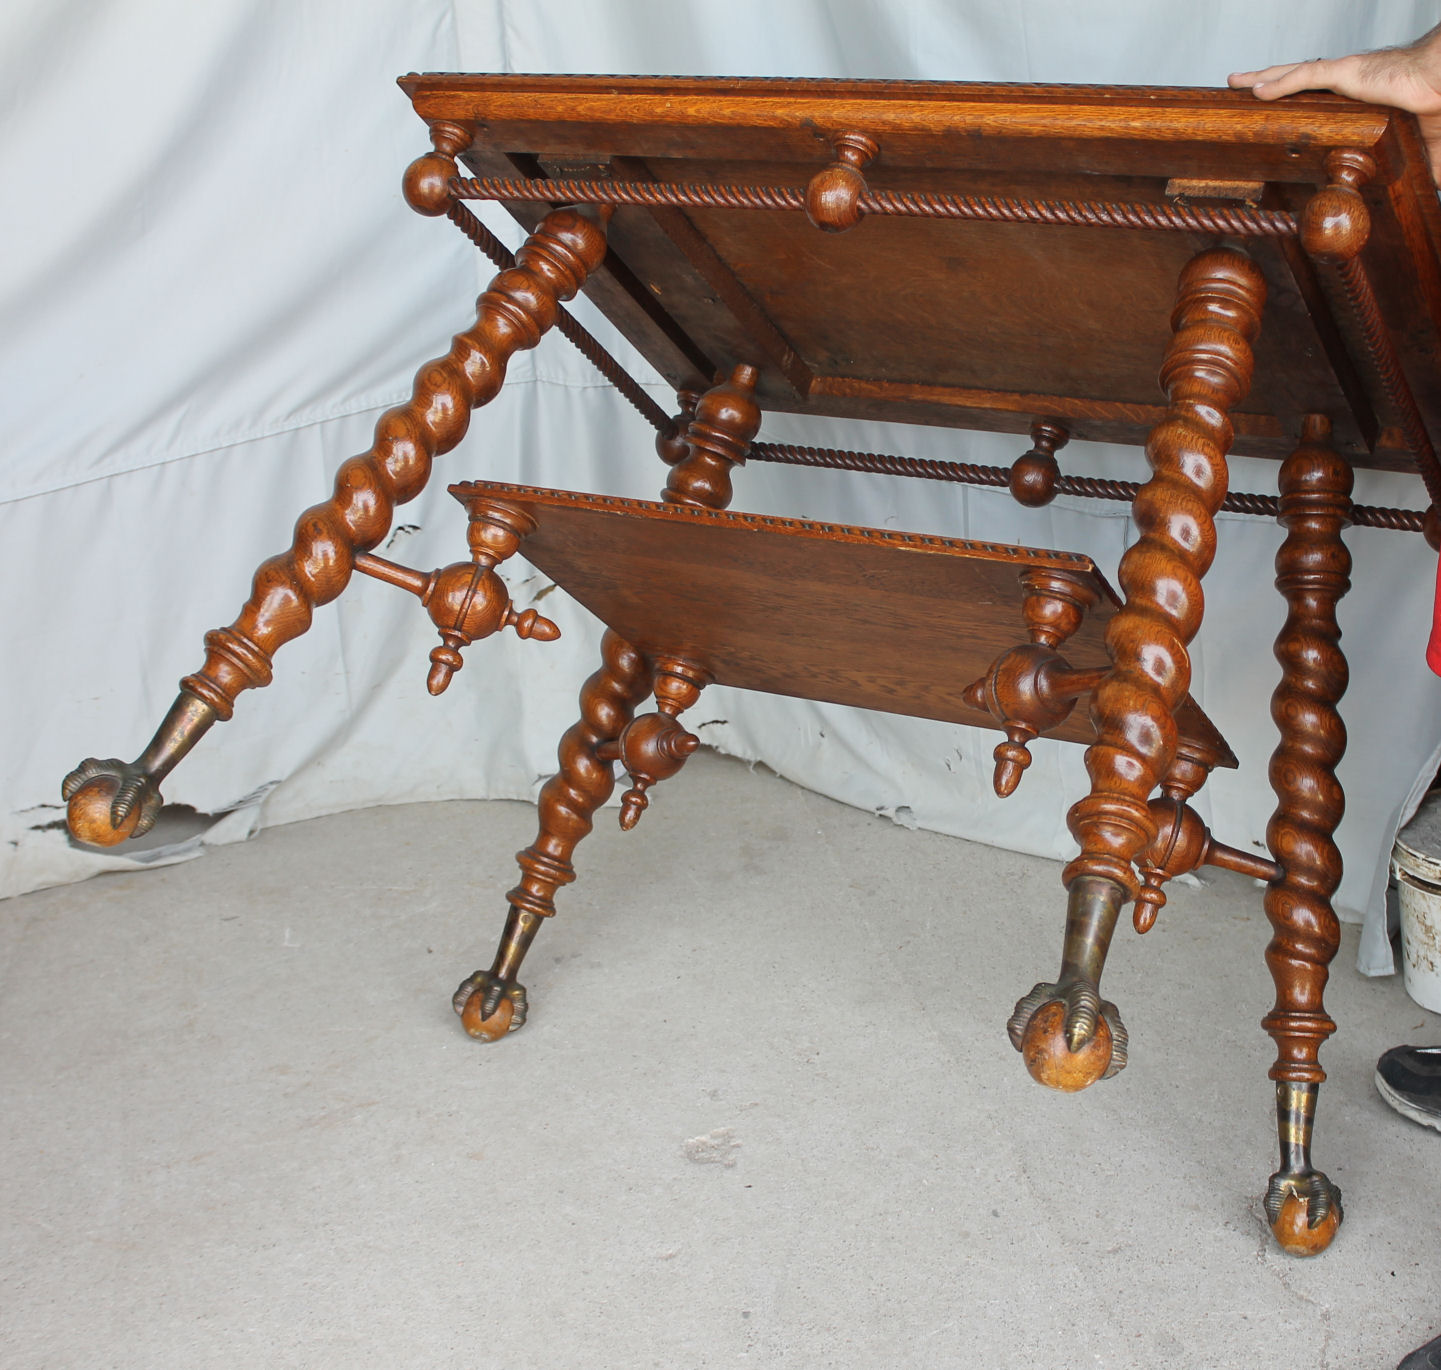 Wood Table Top Bargain John's Antiques | Antique Oak Parlor Lamp Table